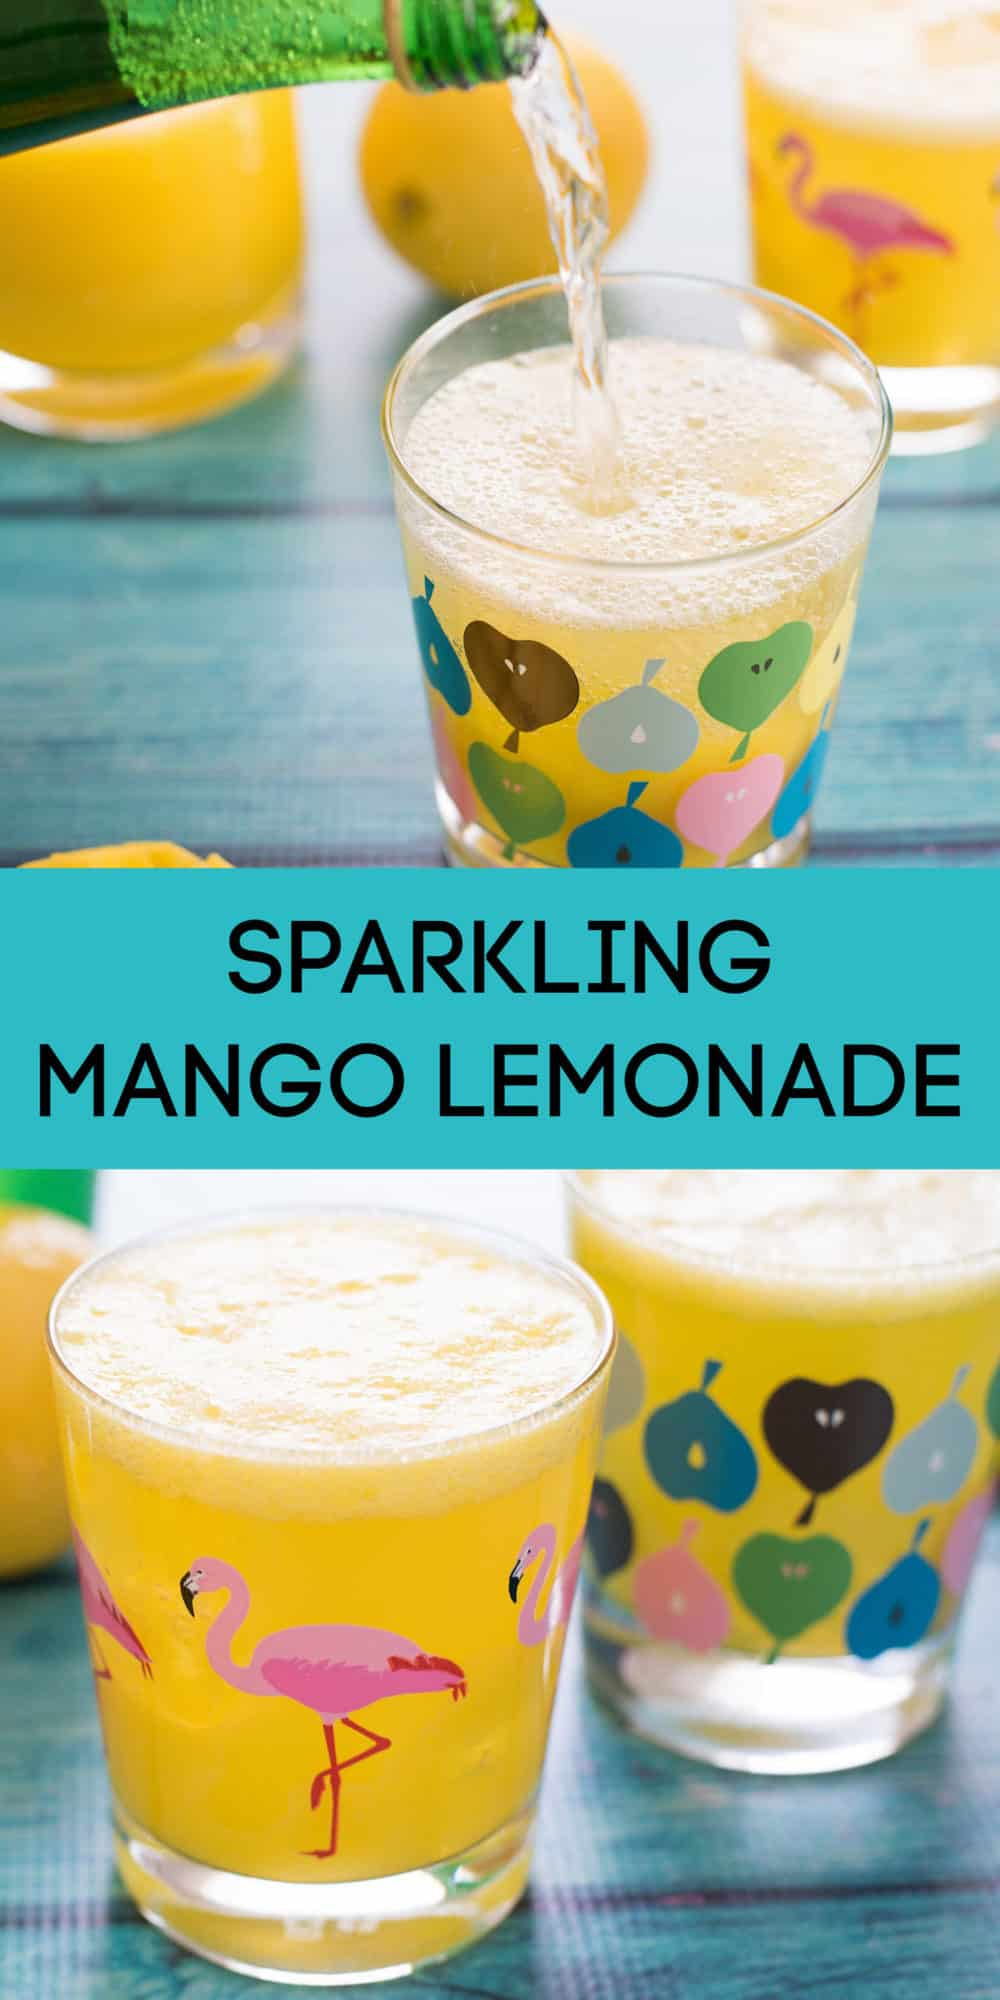 Collage of images of sparkling mango lemonade in printed glasses on teal background. Overlay: SPARKLING MANGO LEMONADE.